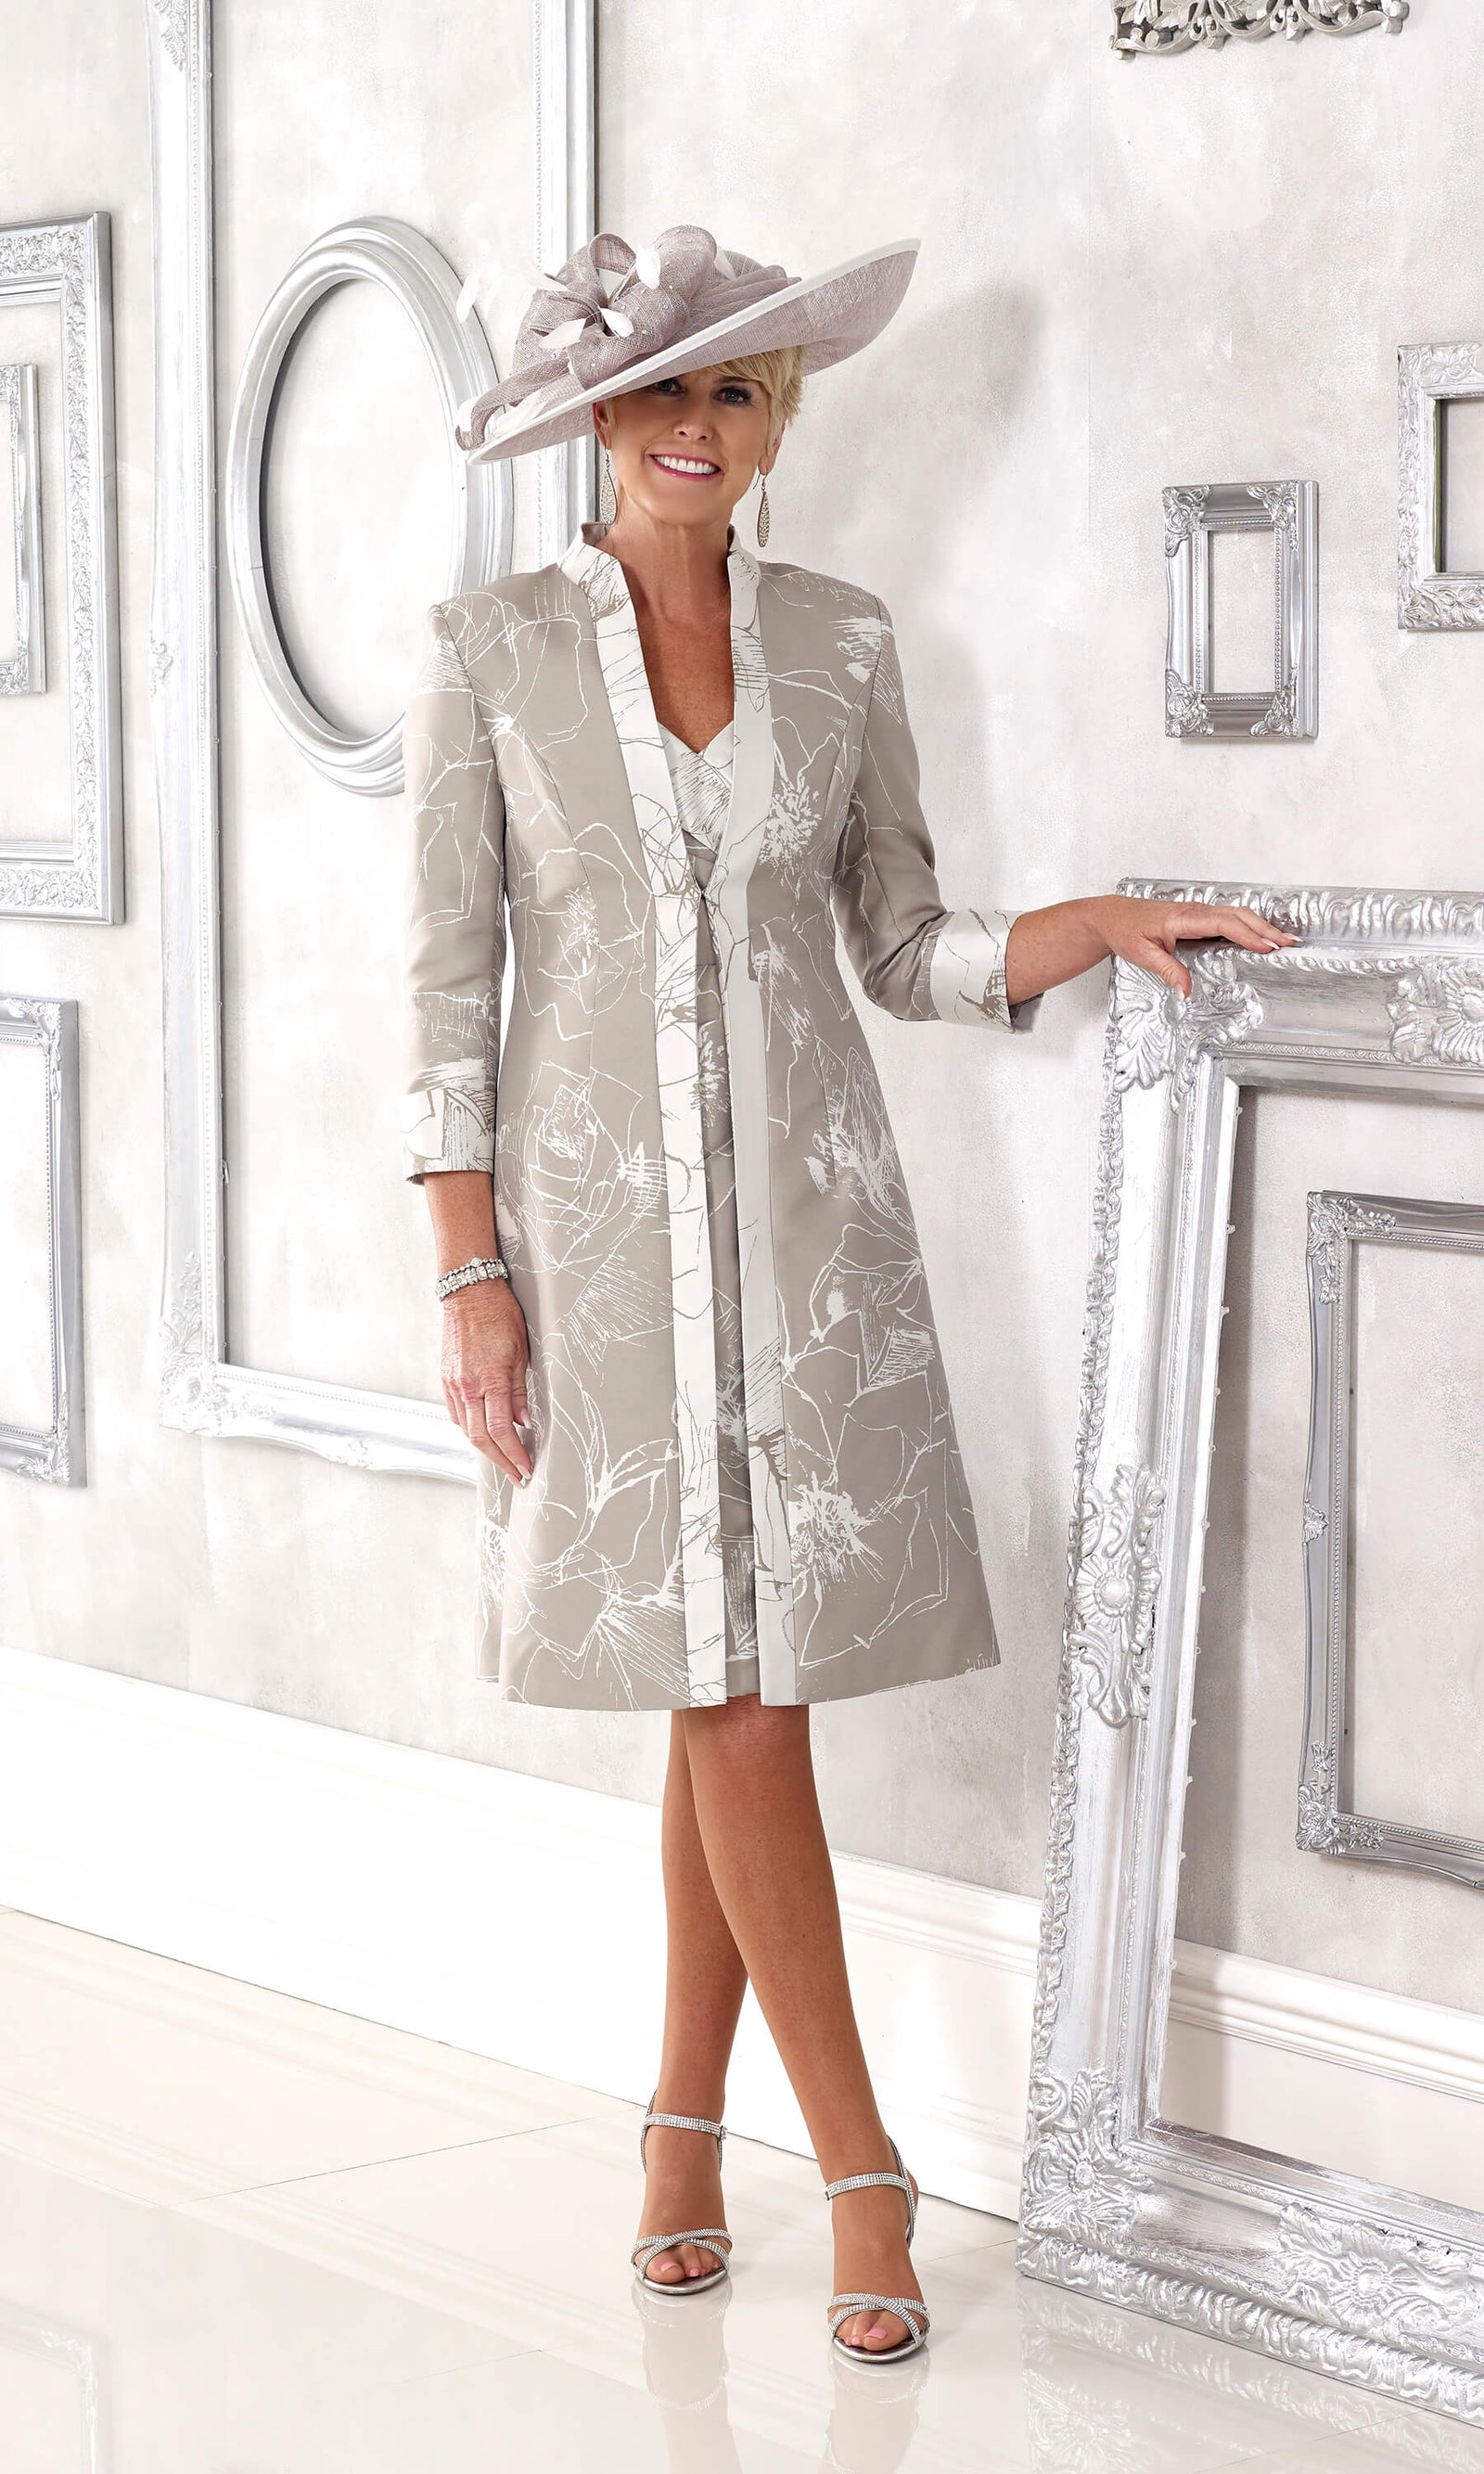 DC398 Taupe Dress Code Patterned Dress & Frock Coat